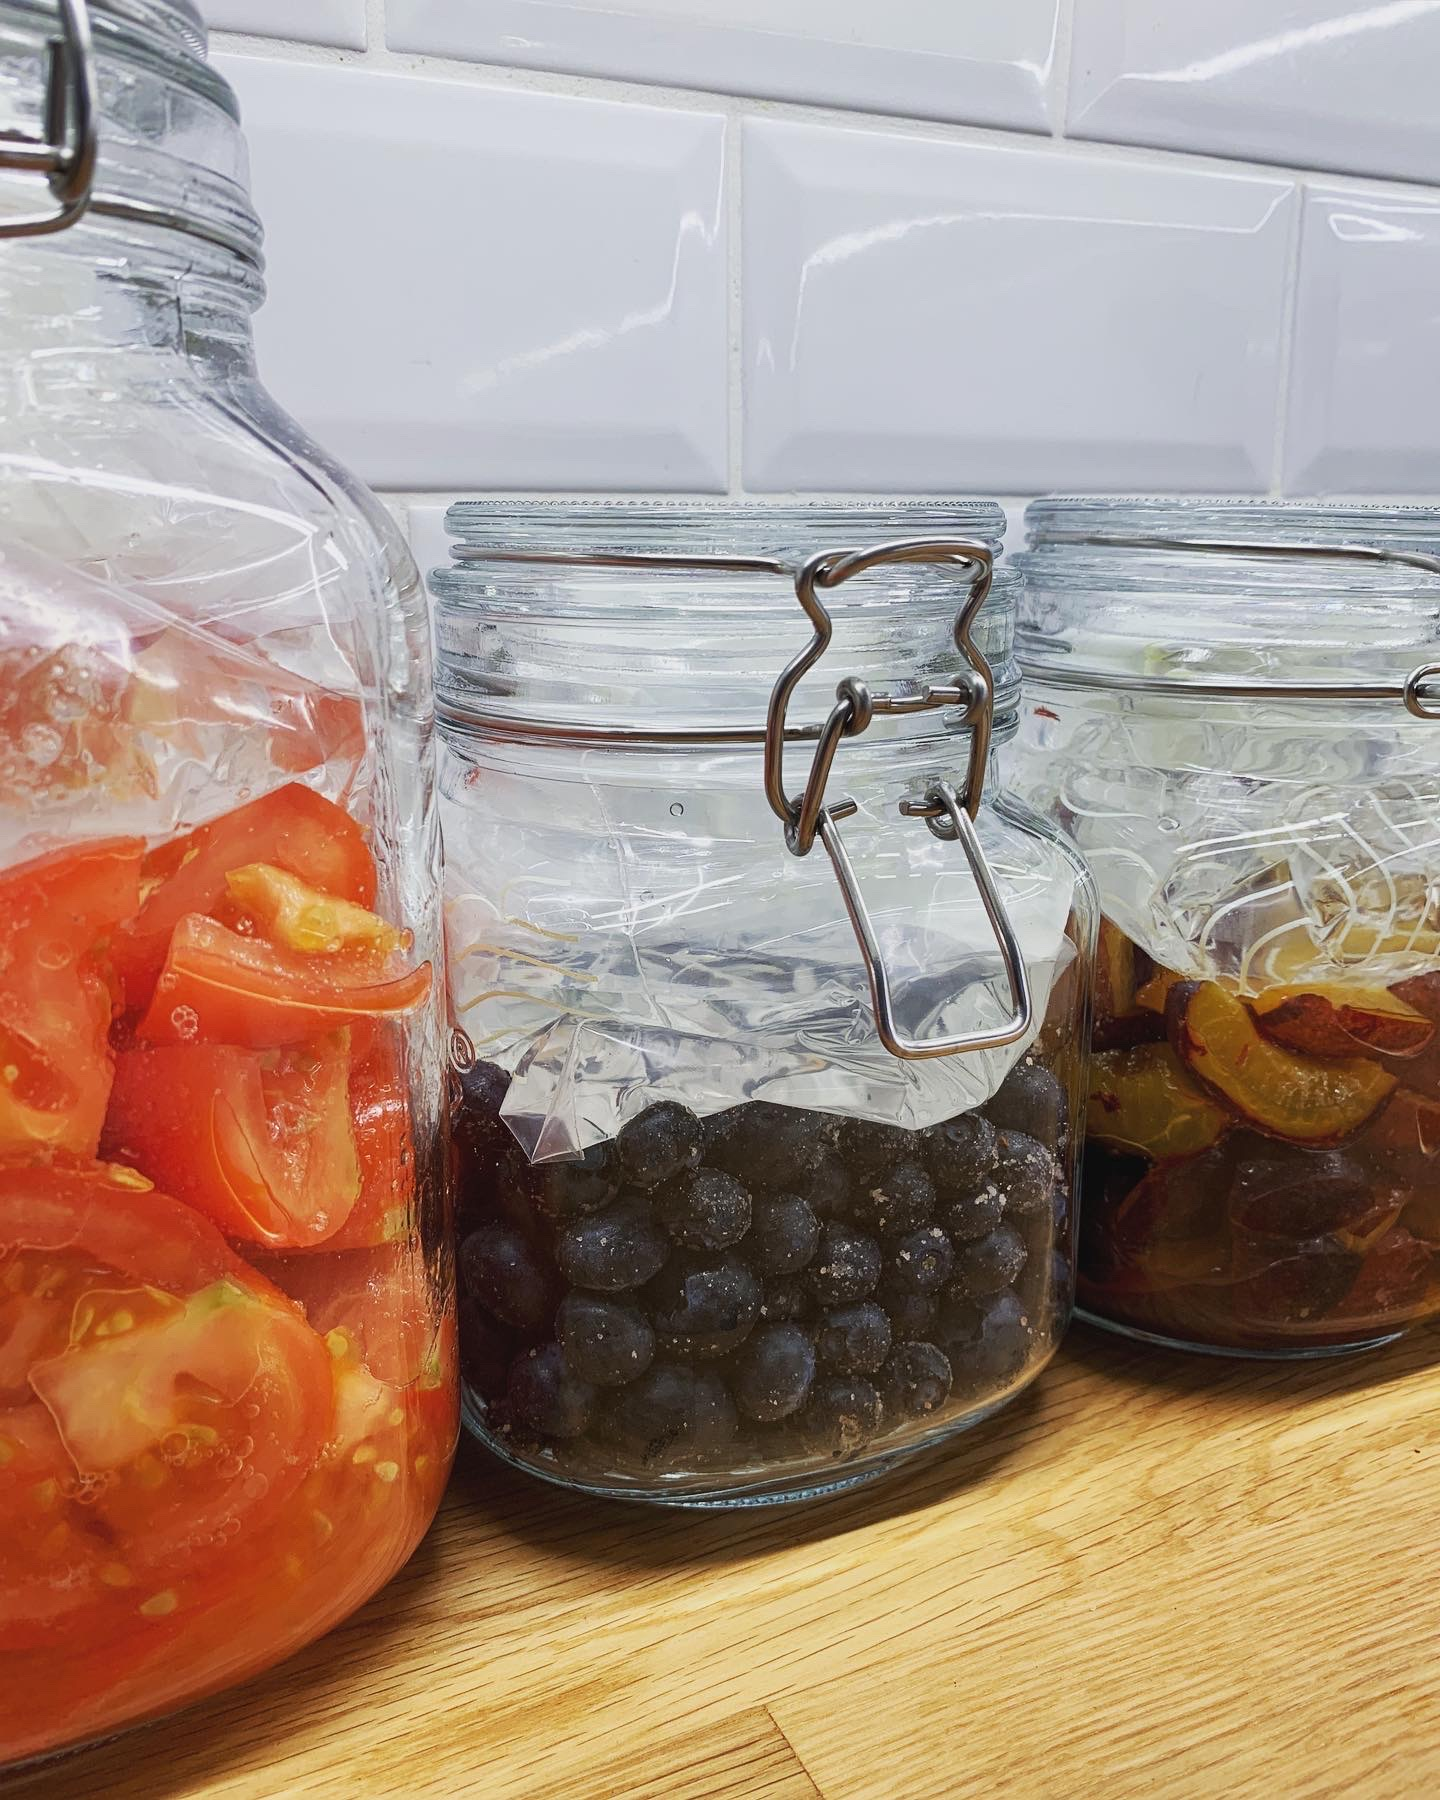 Toms, bloobs and plums